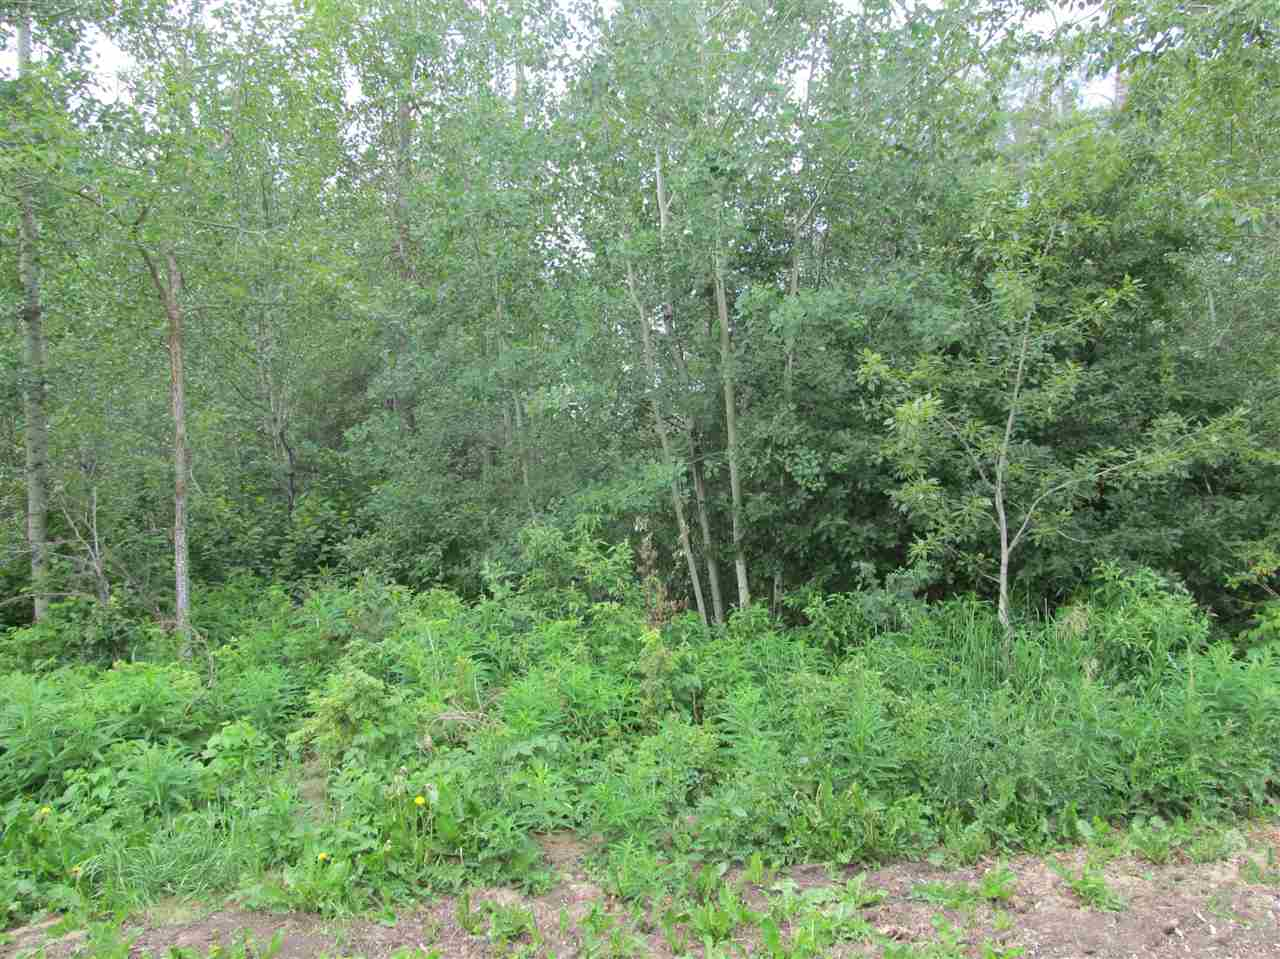 Photo 2: 453 Lakeview Drive: Rural Lac Ste. Anne County Rural Land/Vacant Lot for sale : MLS® # E4046326